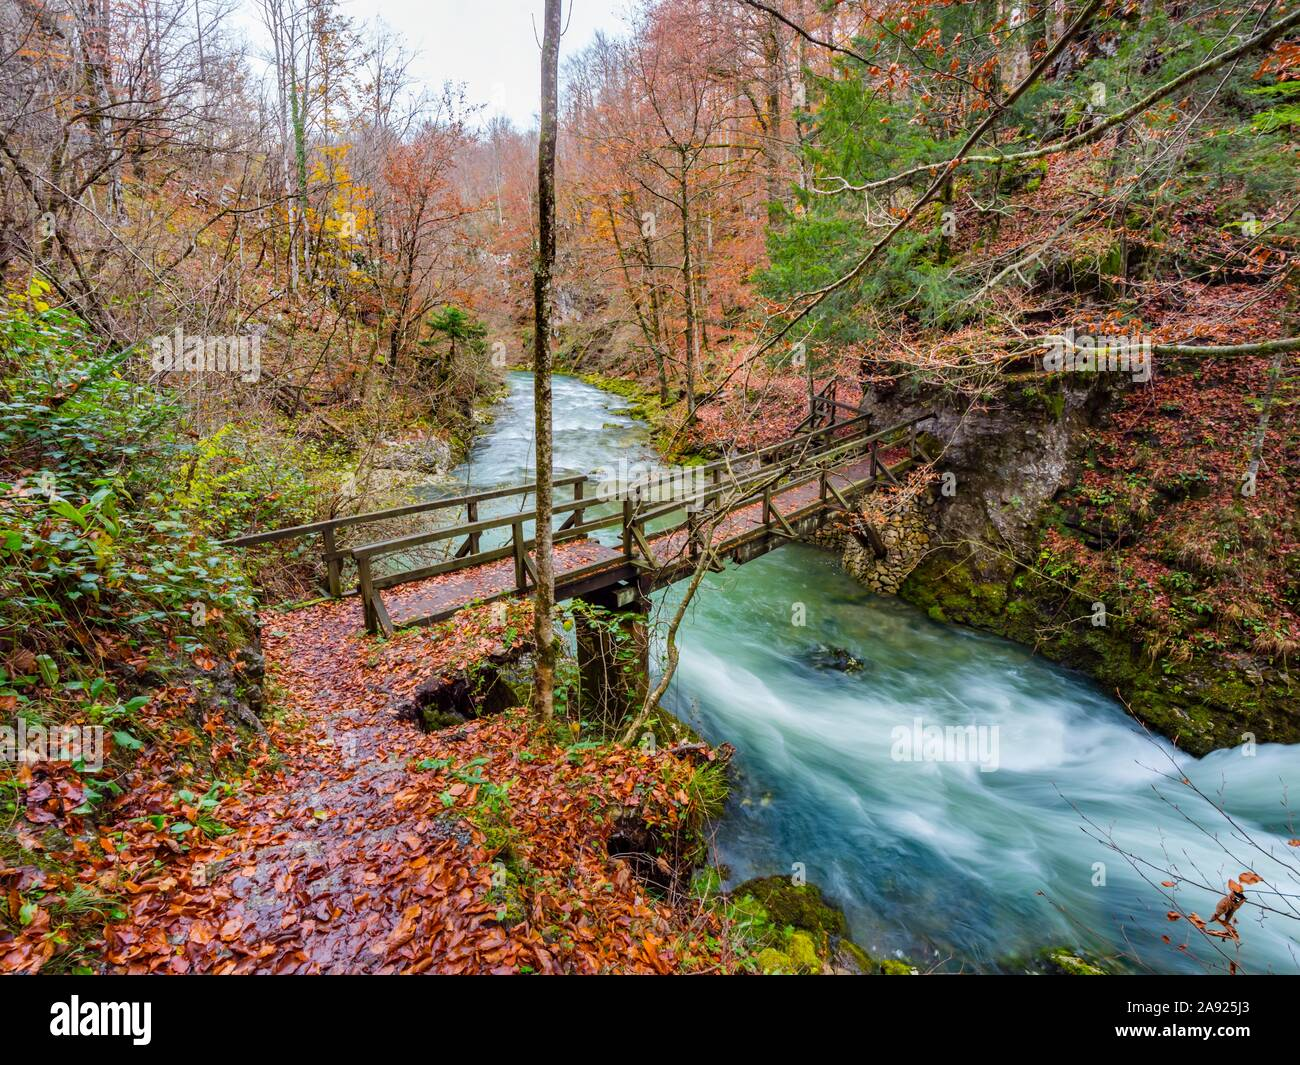 Famous landmark wooden bridge footbridge Kamacnik canyon near Vrbovsko in Croatia Europe Stock Photo